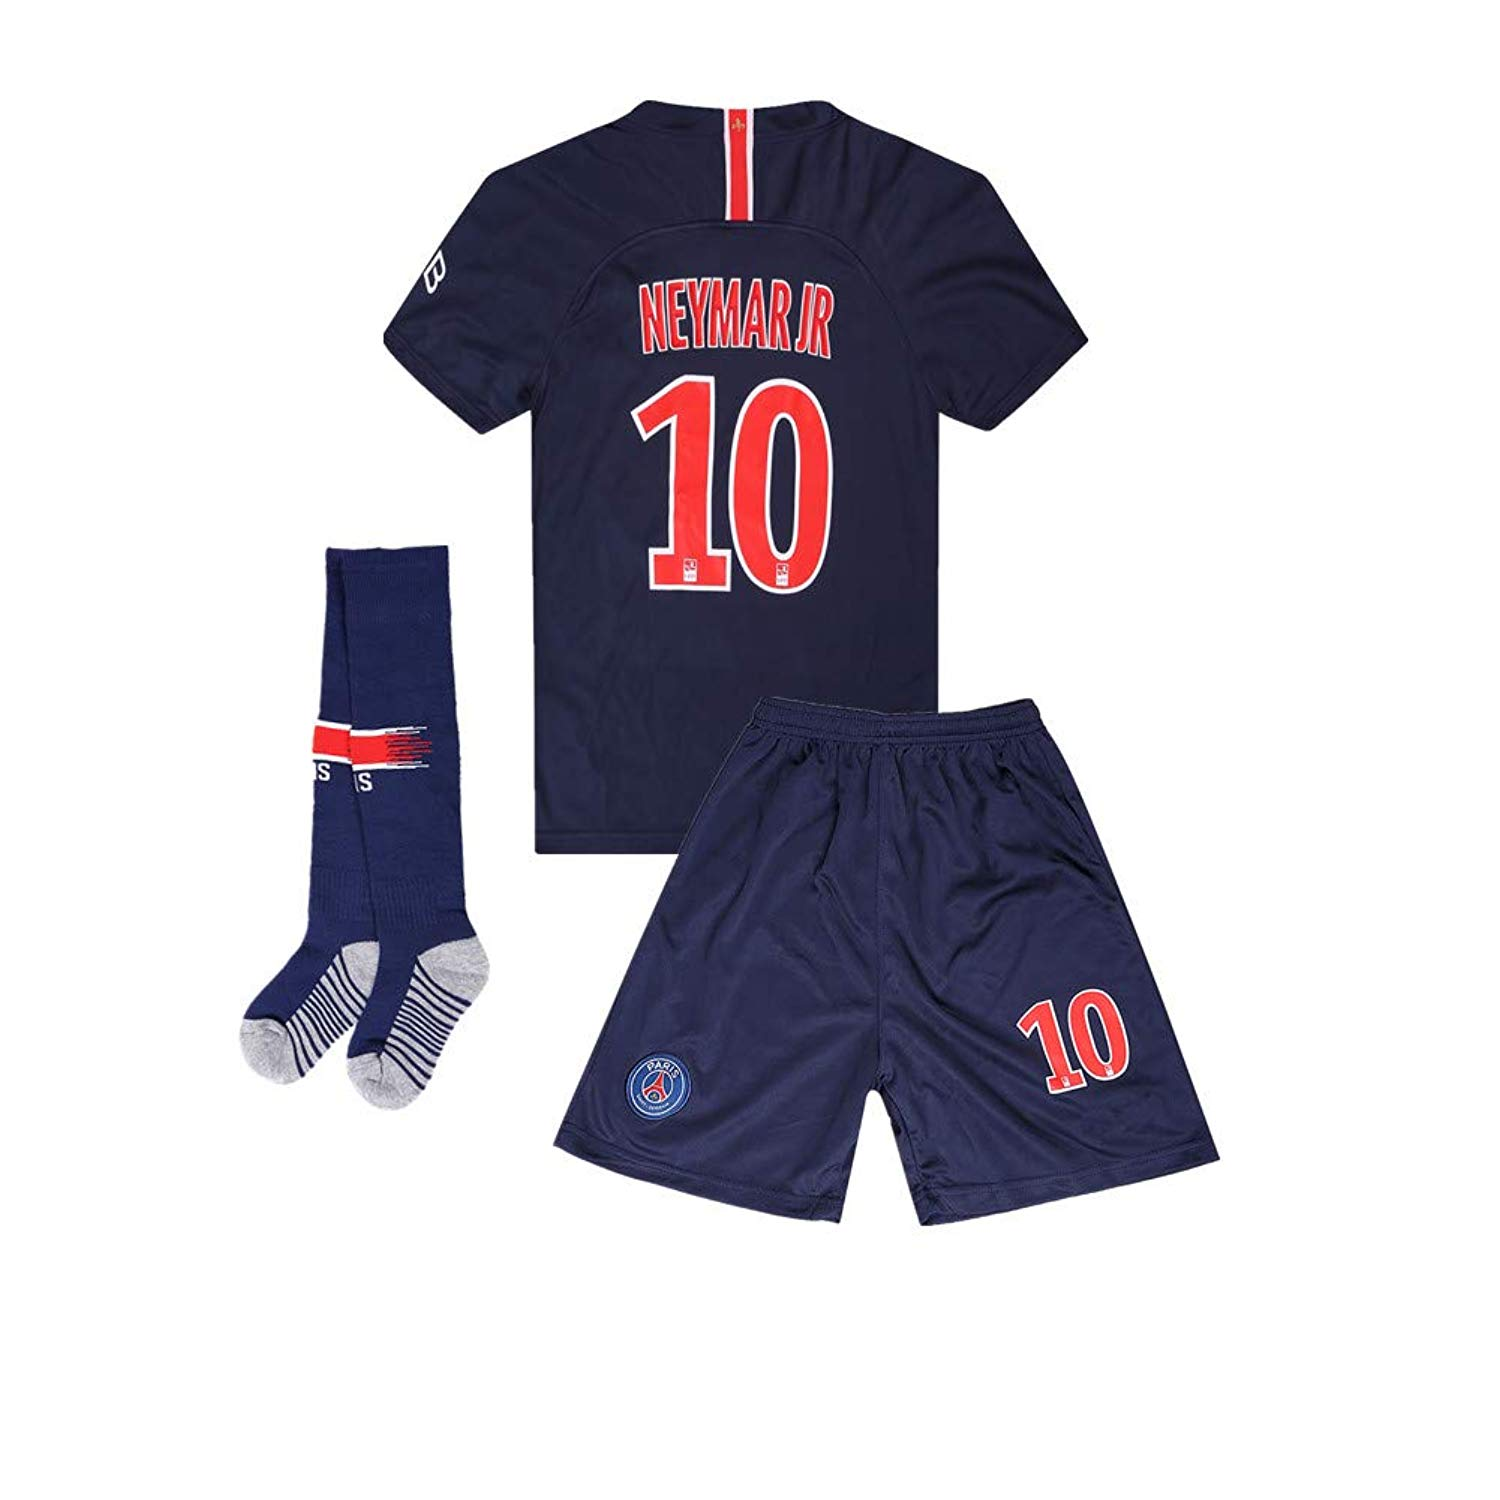 superior quality 6fa5d 593f1 Cheap Neymar Kids Jersey, find Neymar Kids Jersey deals on ...